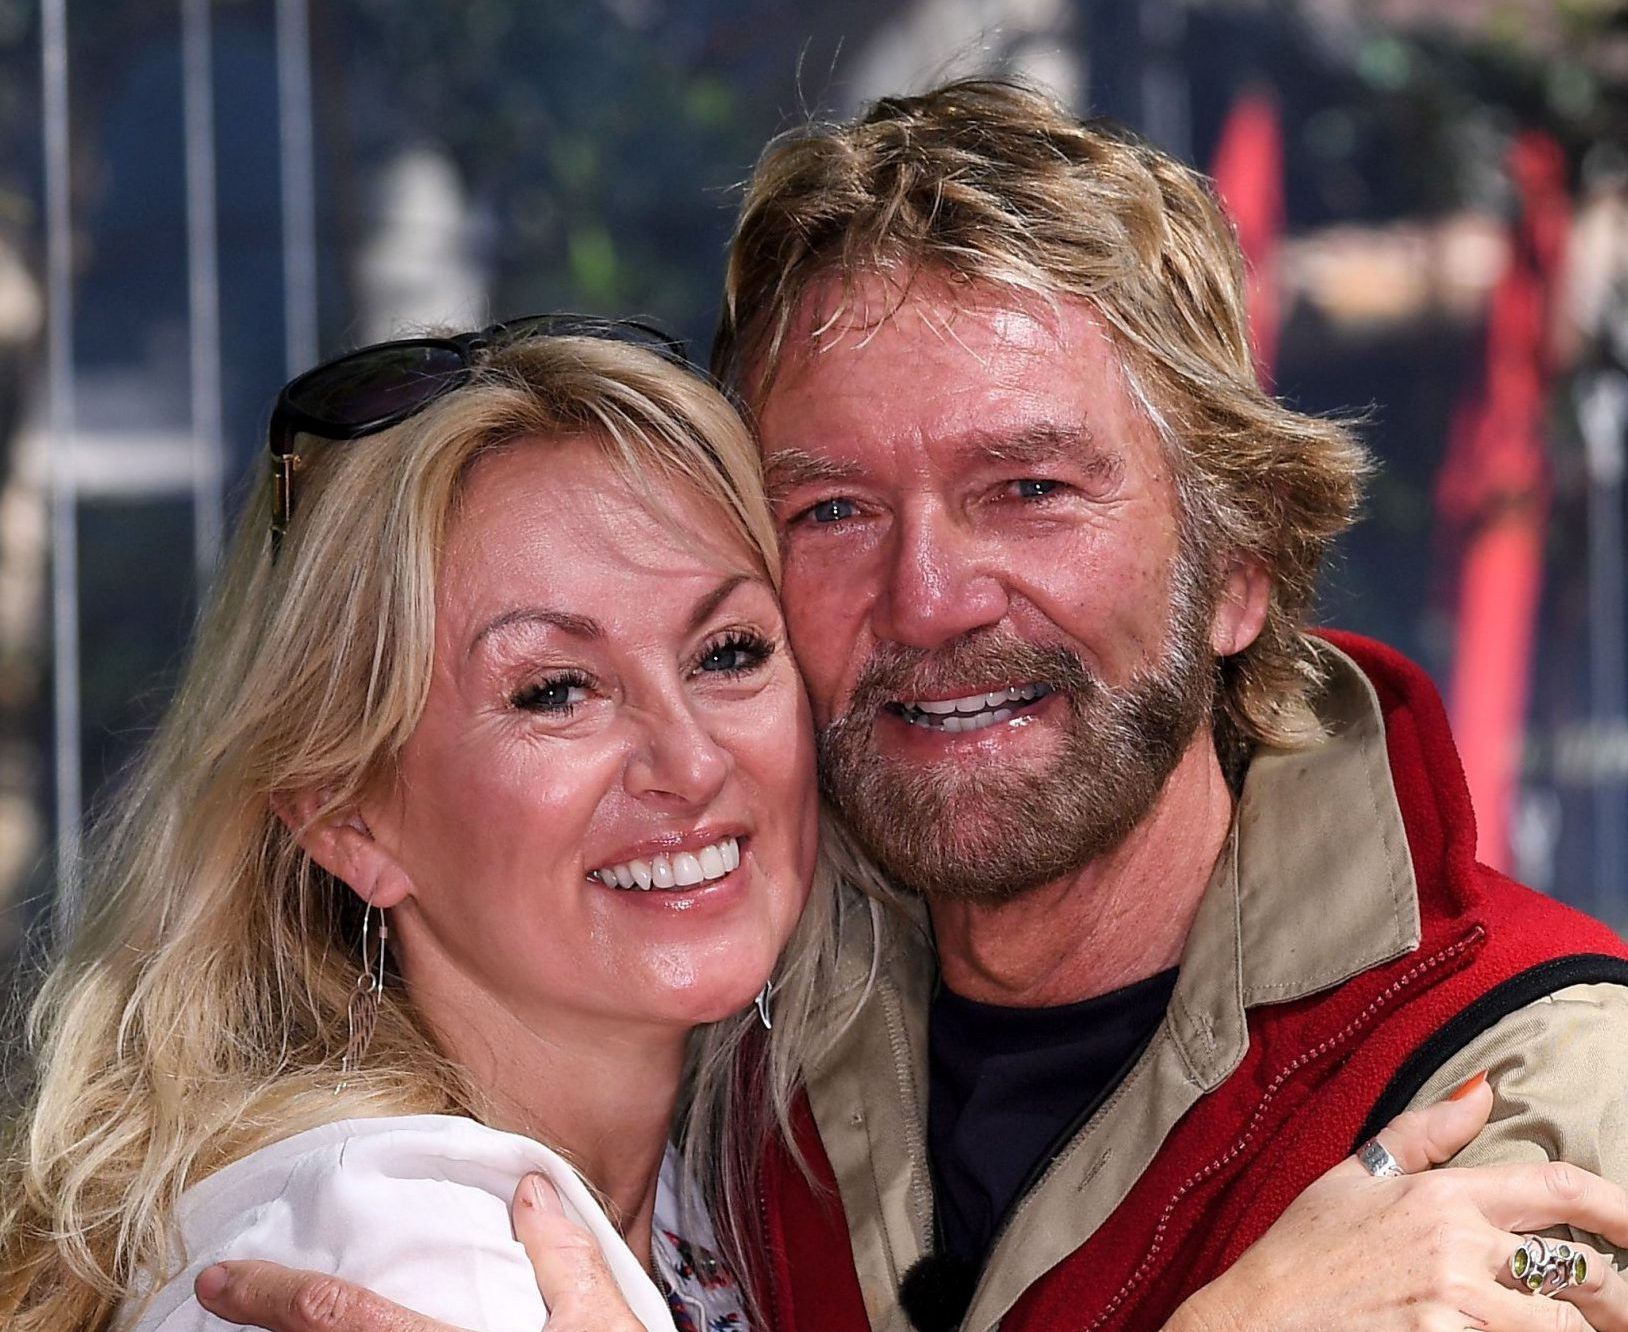 Noel Edmonds' wife compares his shock exit from I'm A Celebrity to Brexit